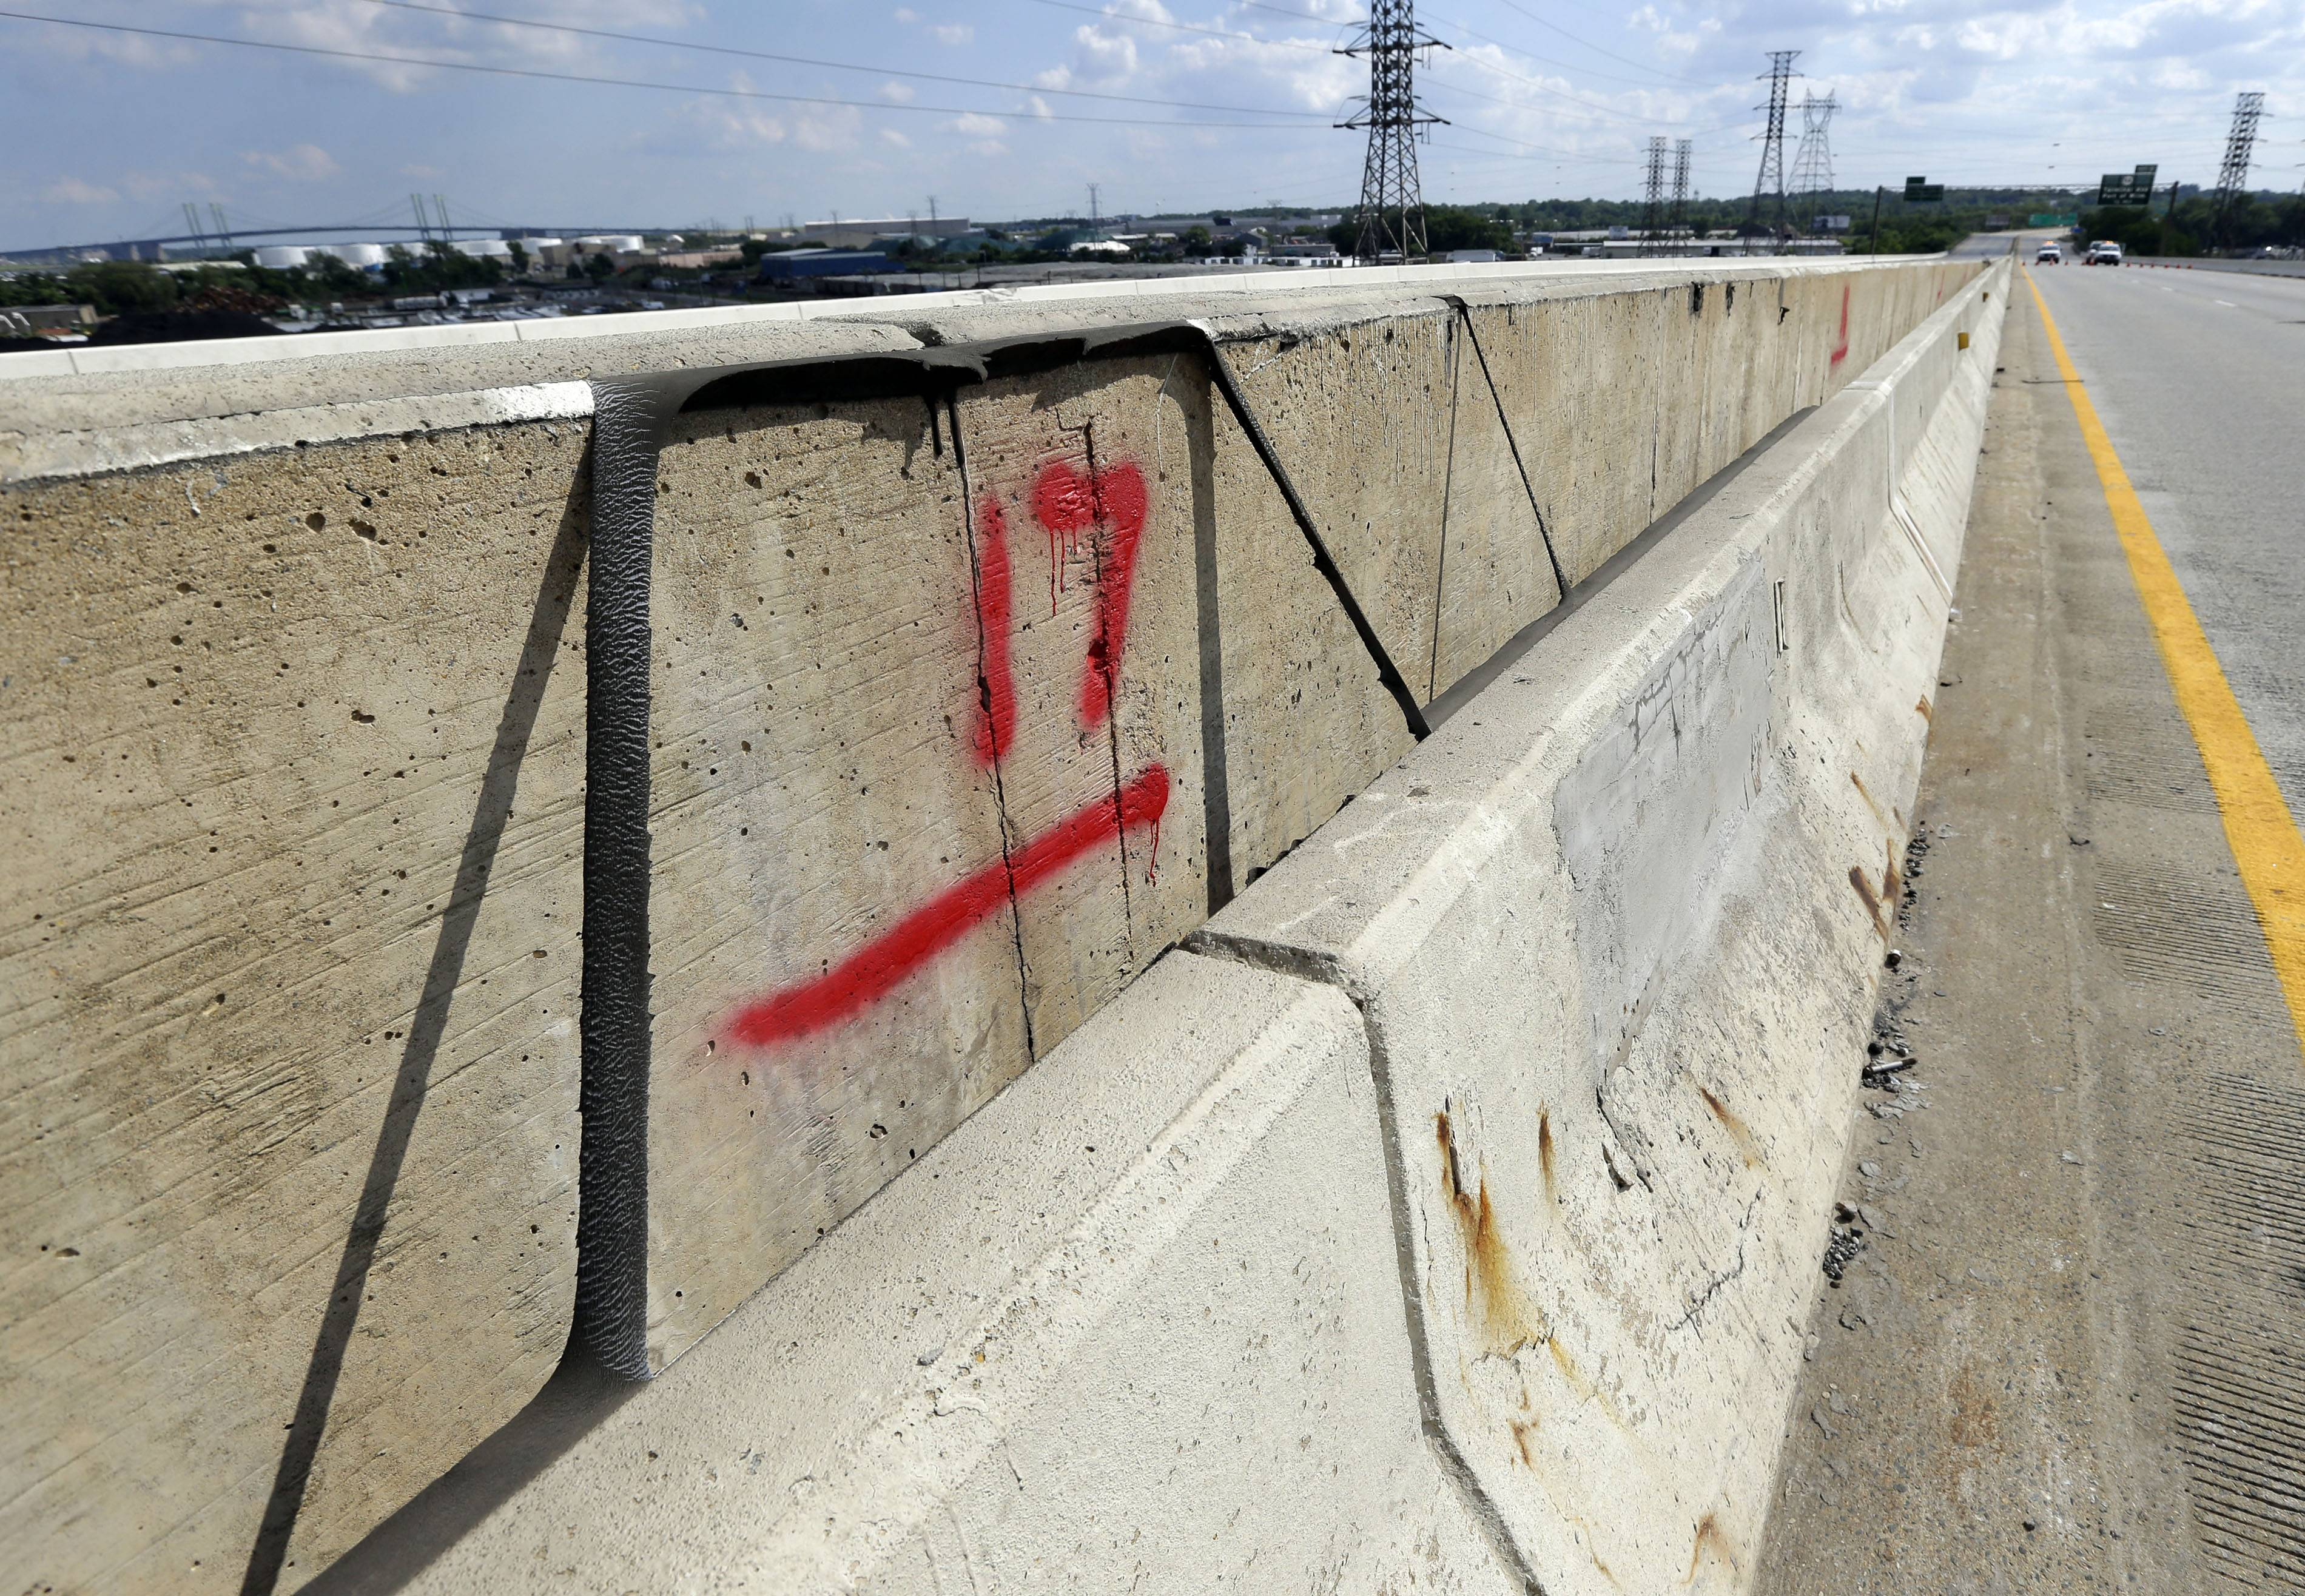 Spray paint shows a 17-inch difference between the tops of walls separating the north and southbound lanes of the Interstate 495 bridge over the Christina River near Wilmington, Del.